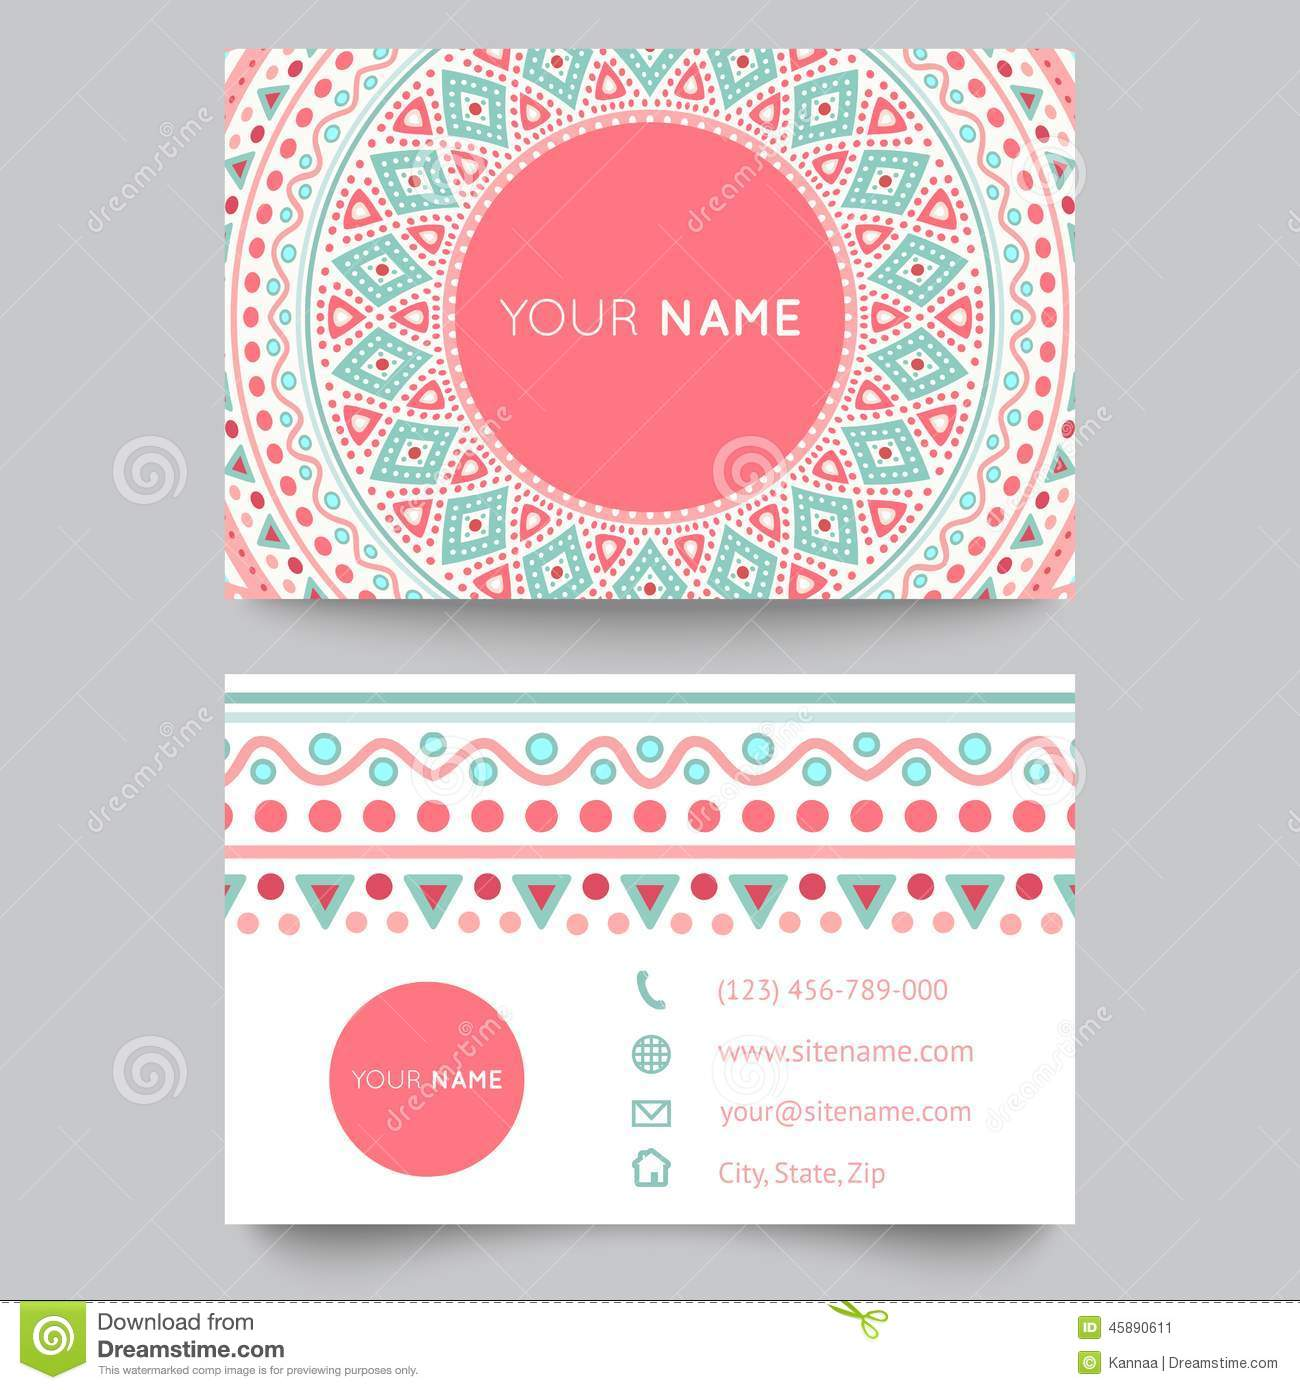 Business Card Template, Blue, White And Pink Stock Vector ...